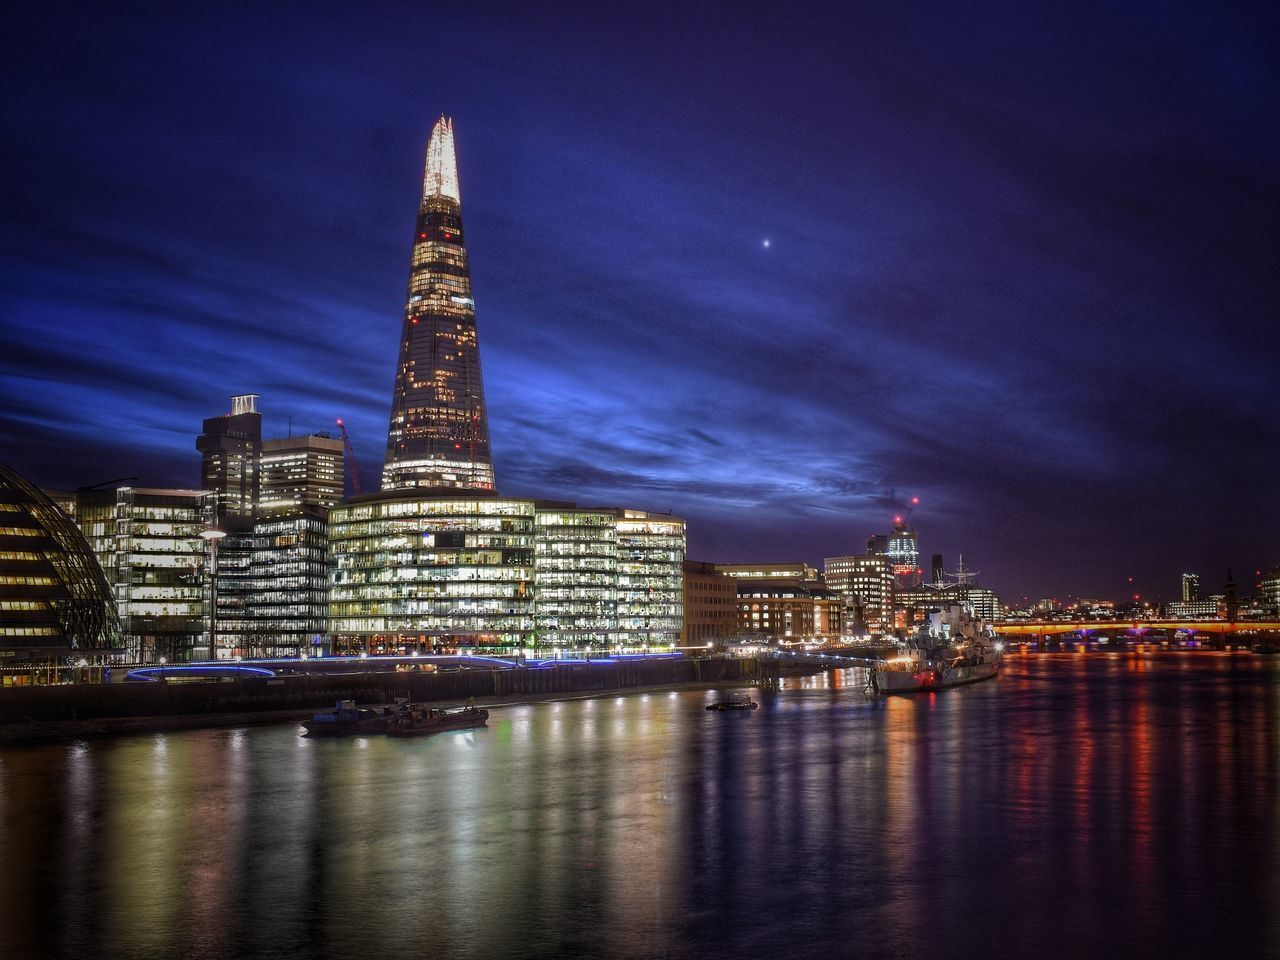 London Skyline by evening. Clouds And Sky London Architecture London Skyline London Evening Sky Night Lights Architecture The Shard City Cityscape City Of London Long Exposure River River Thames River Thames Skyline River Thames At Night The Shard By Night Night Night Sky Reflections Reflections In The Water Glass